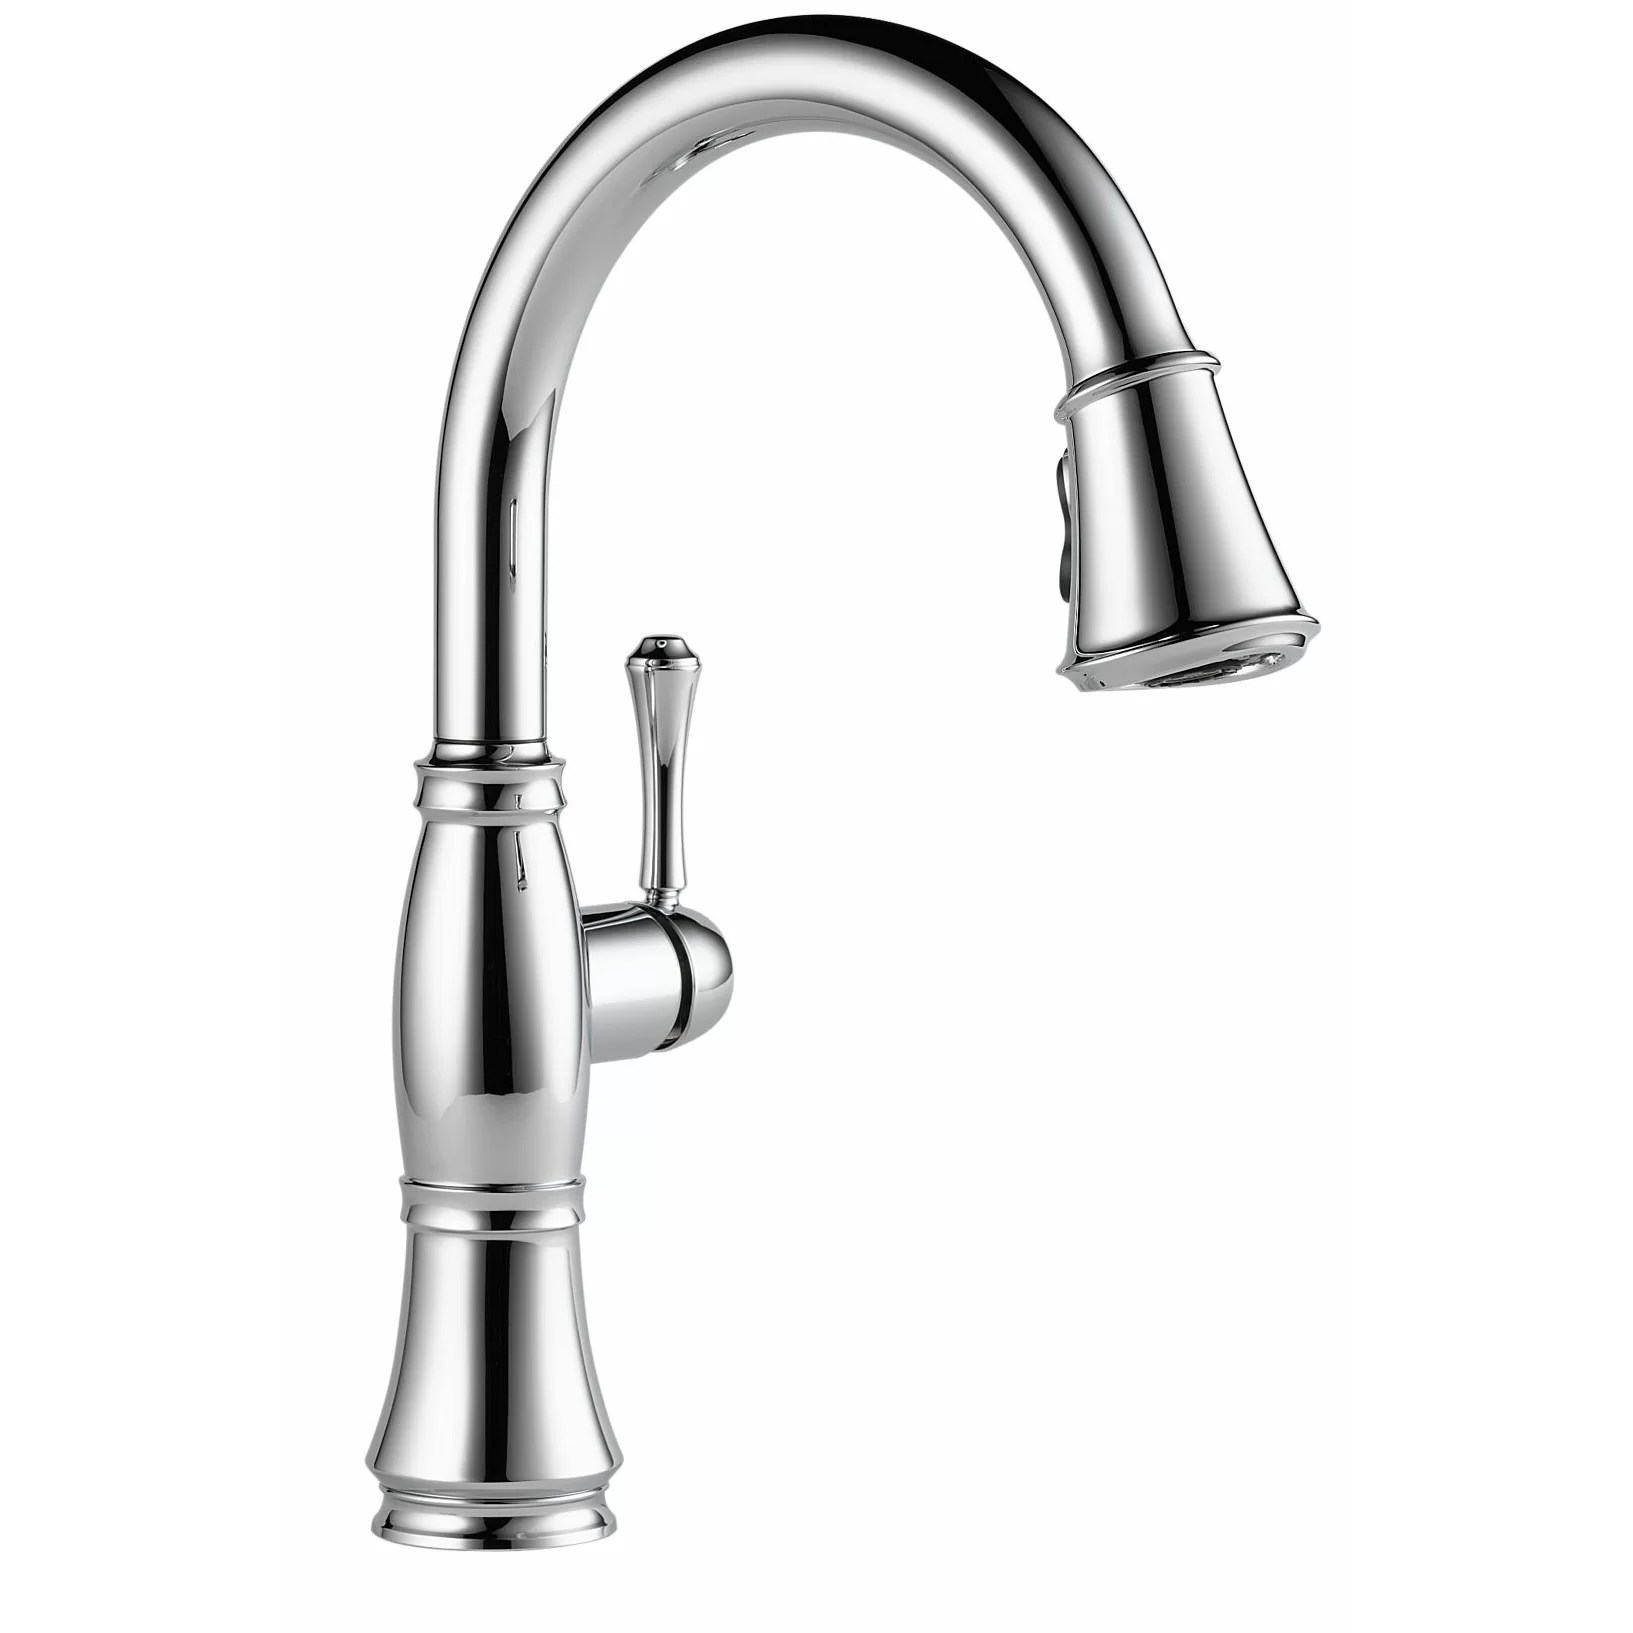 3 hole kitchen faucets c a~ widespread kitchen faucet Cassidy Single Handle Standard Kitchen Faucet with Spray